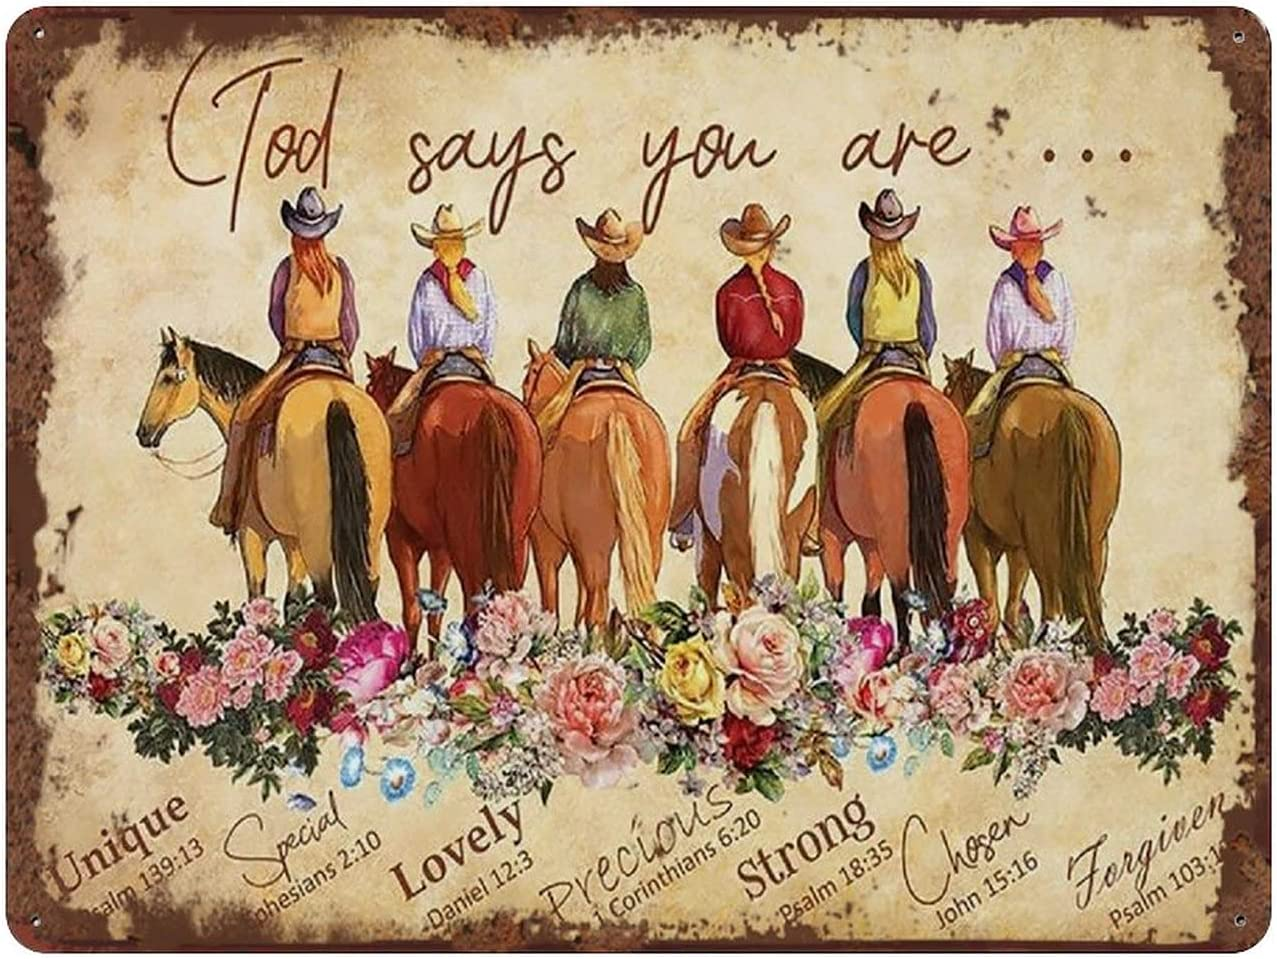 God Says You are Cowgirl Bible Verse Inspirational Vintage Tin Sign for Horse Lovers Cowgirl Christian Art Vintage Wall Decor 5.5x8 Inch